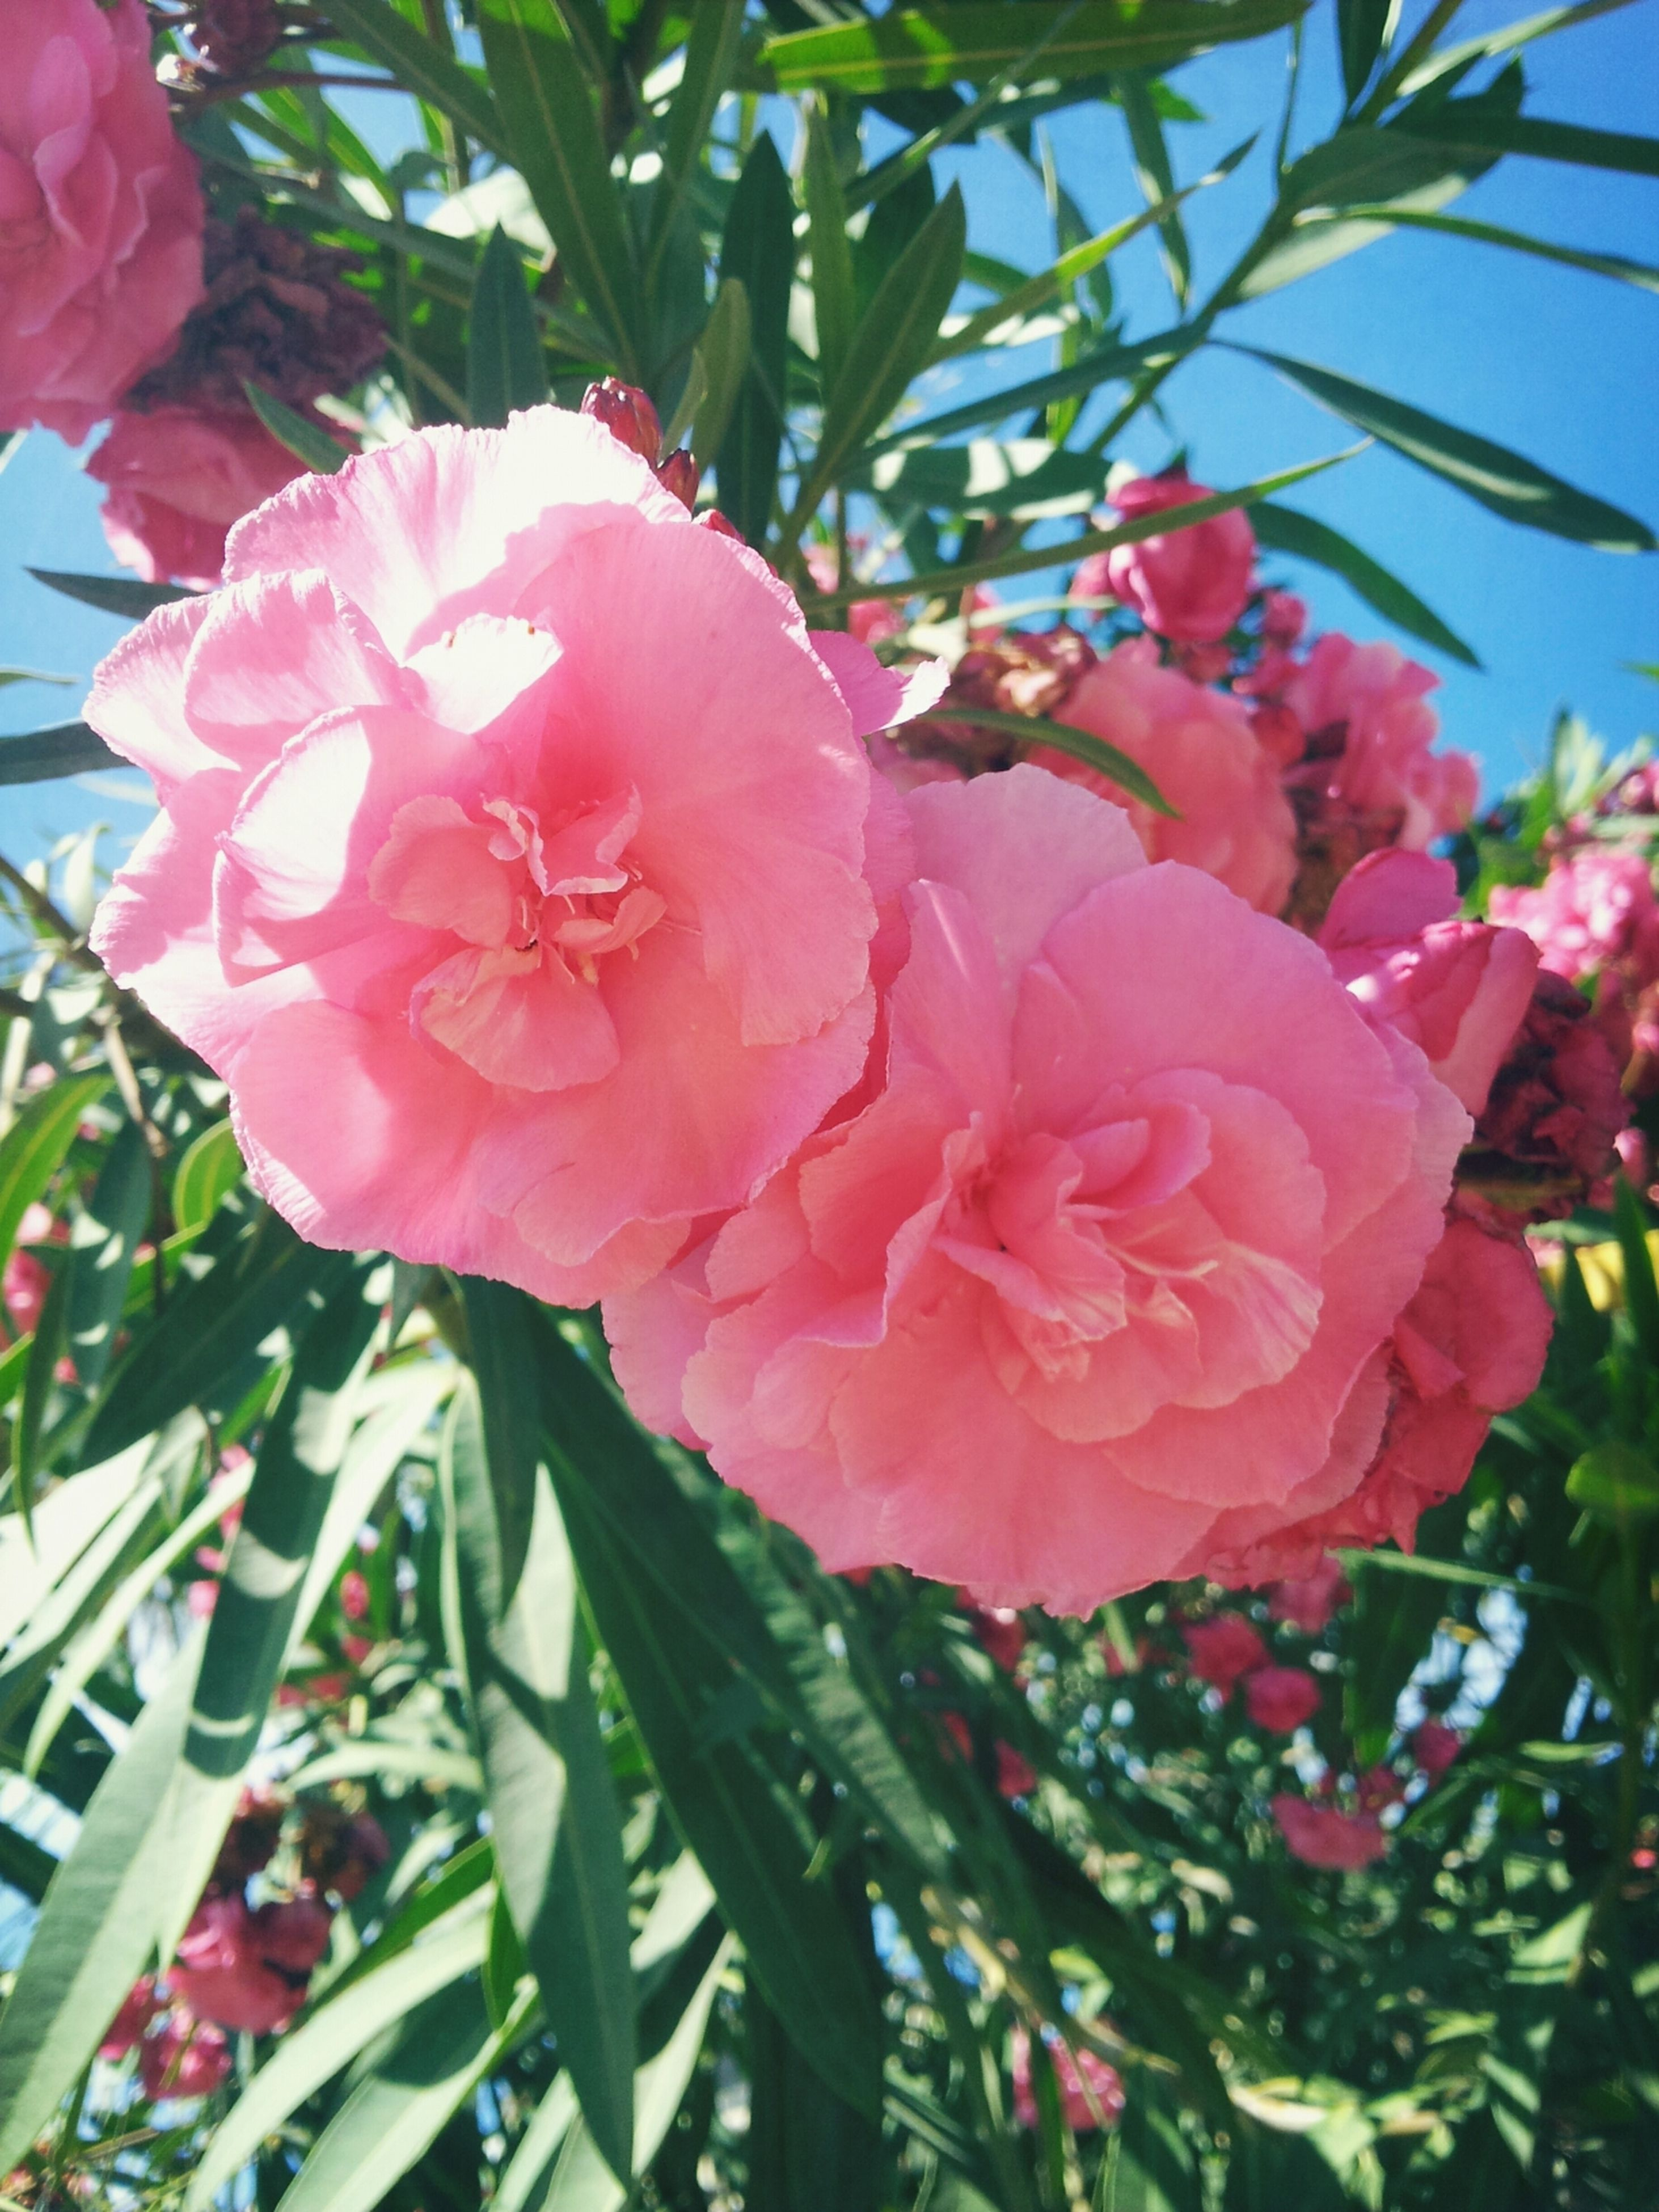 flower, freshness, fragility, growth, petal, pink color, beauty in nature, flower head, blooming, nature, low angle view, close-up, leaf, plant, in bloom, blossom, tree, branch, day, sunlight